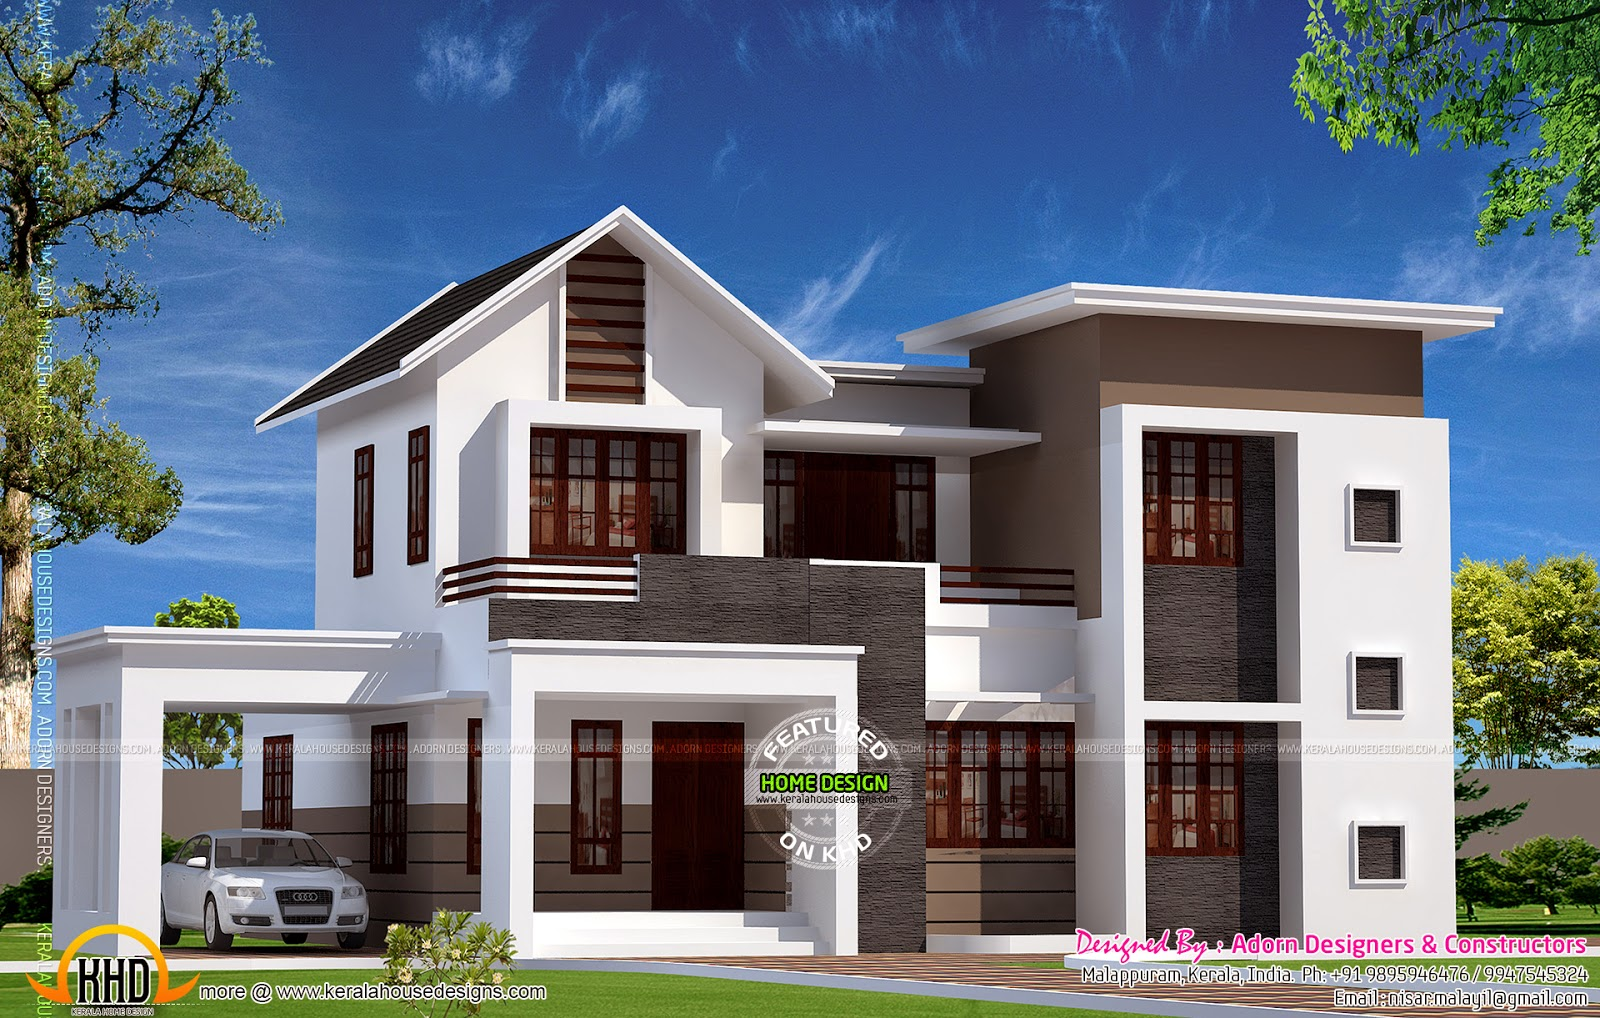 new home designs - New Home Designs